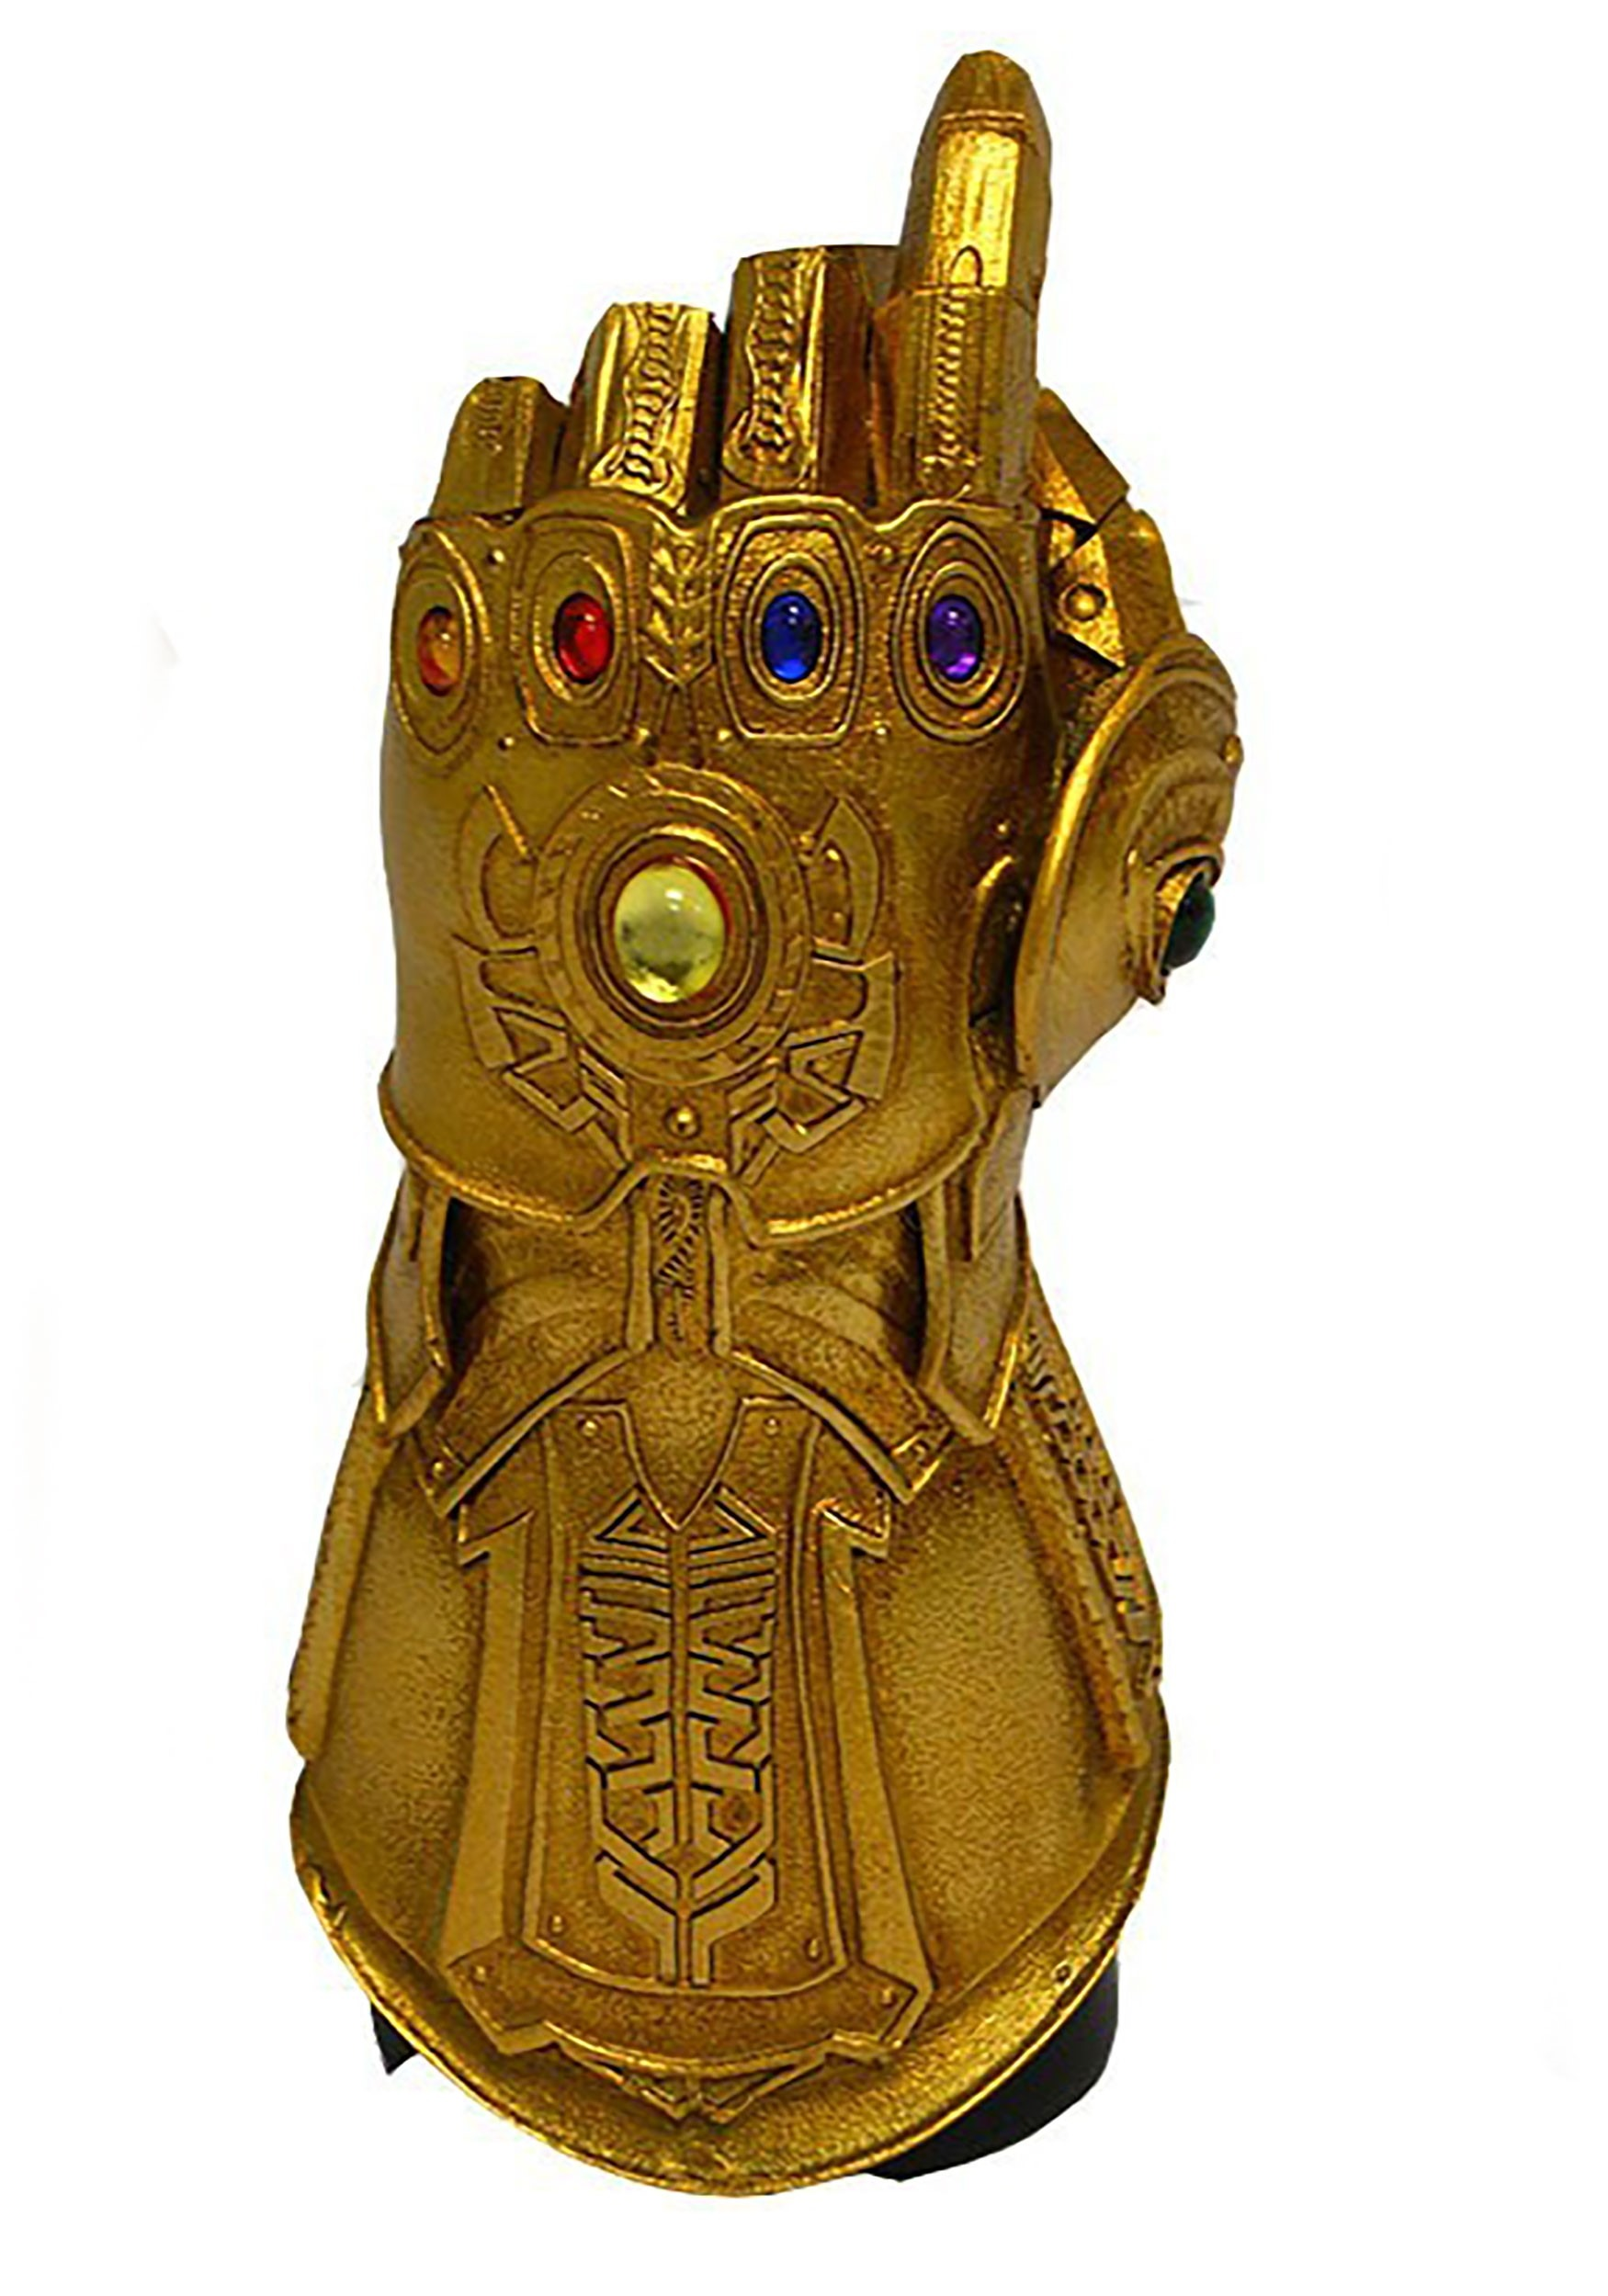 2019 Thanos Infinity Gauntlet Snap SDCC PX Desk Monument